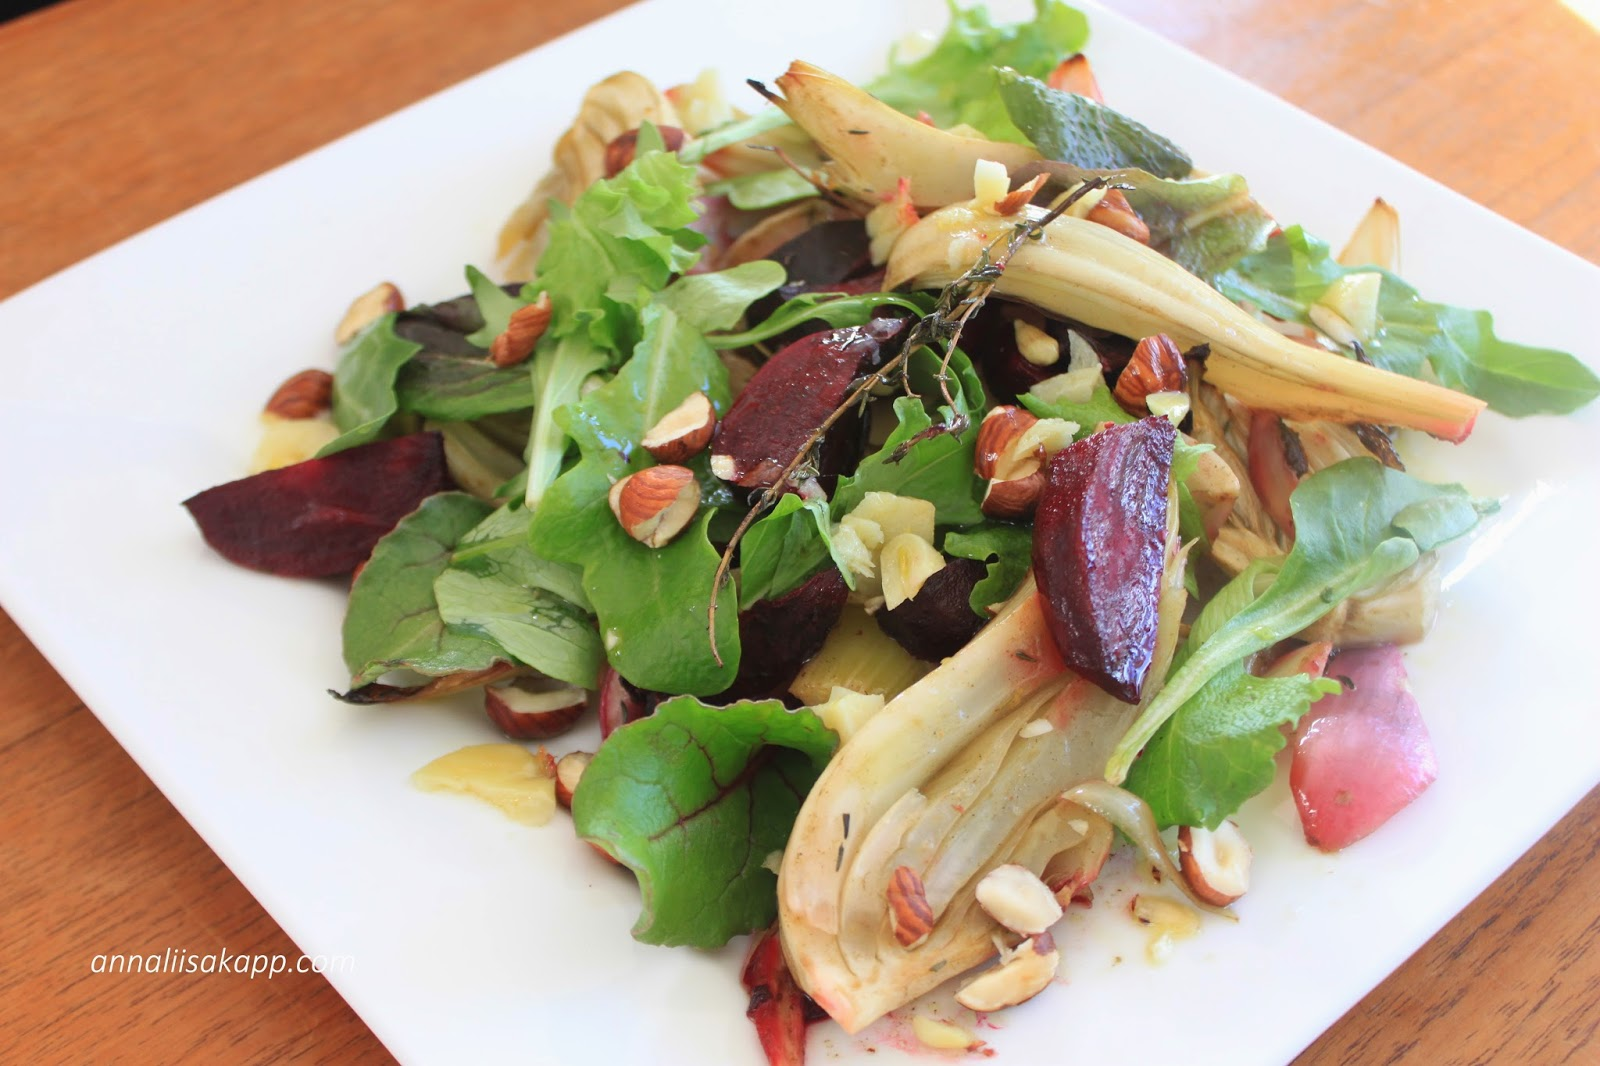 Fall foods: Roasted beet and fennel salad